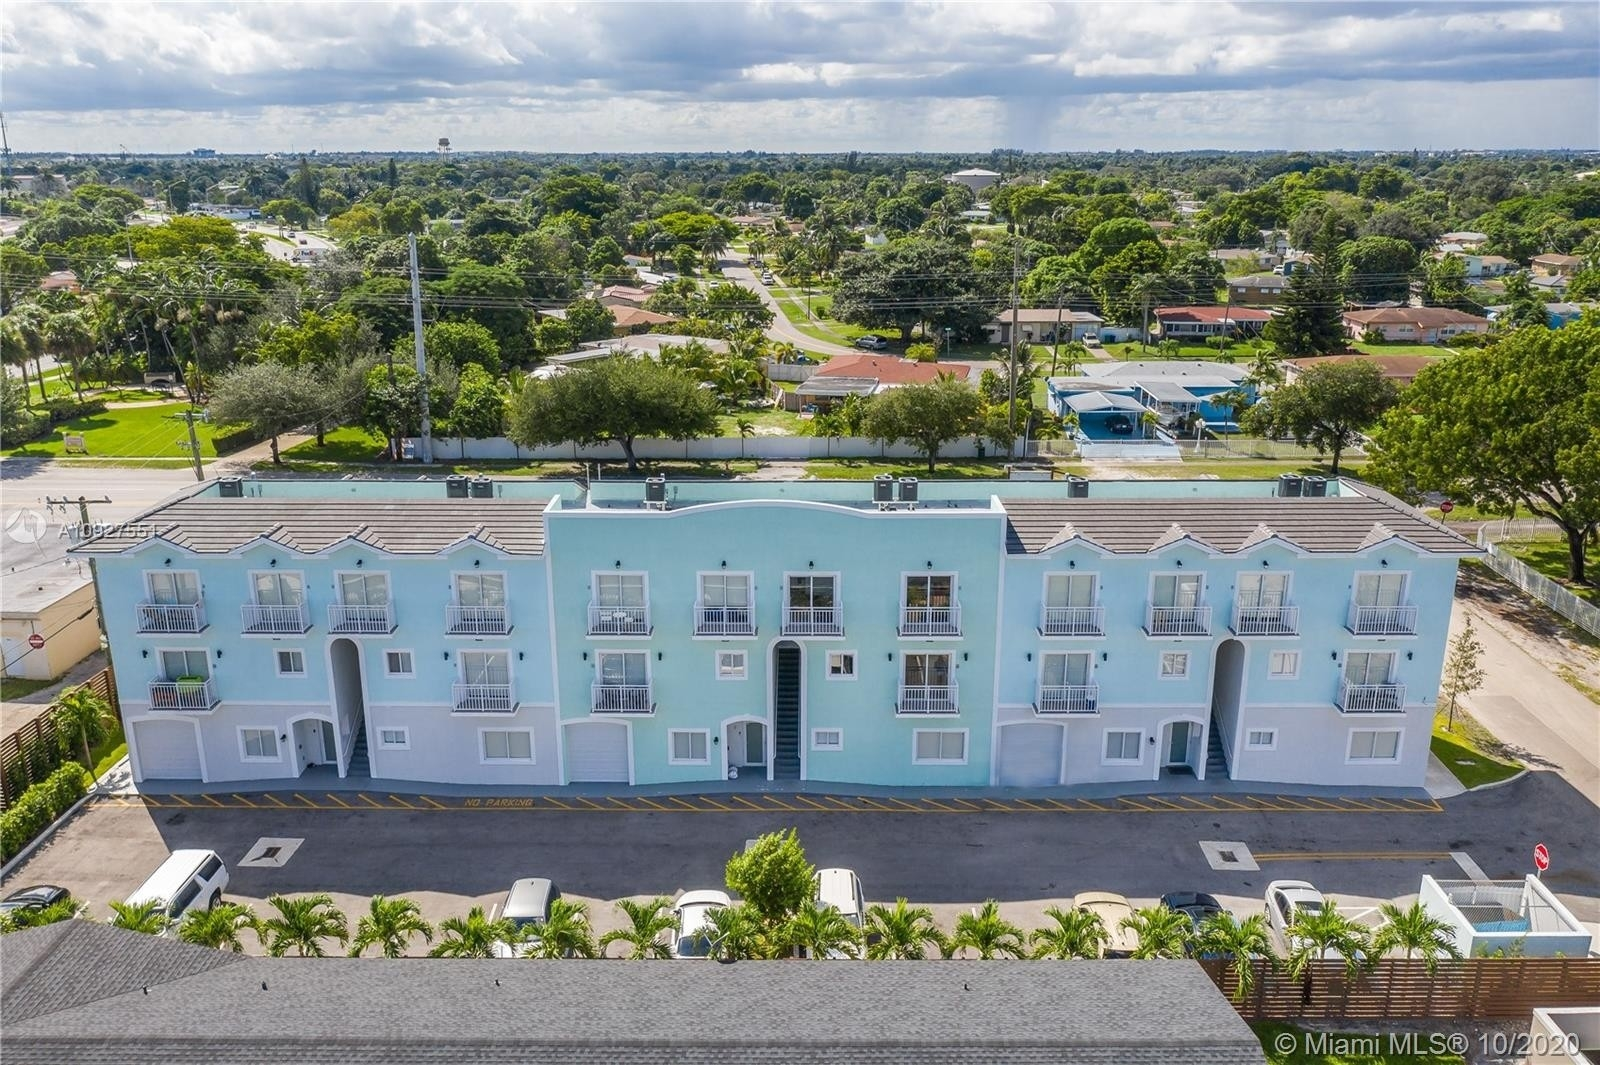 Multi Family Townhouse for Sale at Miramar Isles, Miramar, FL 33023